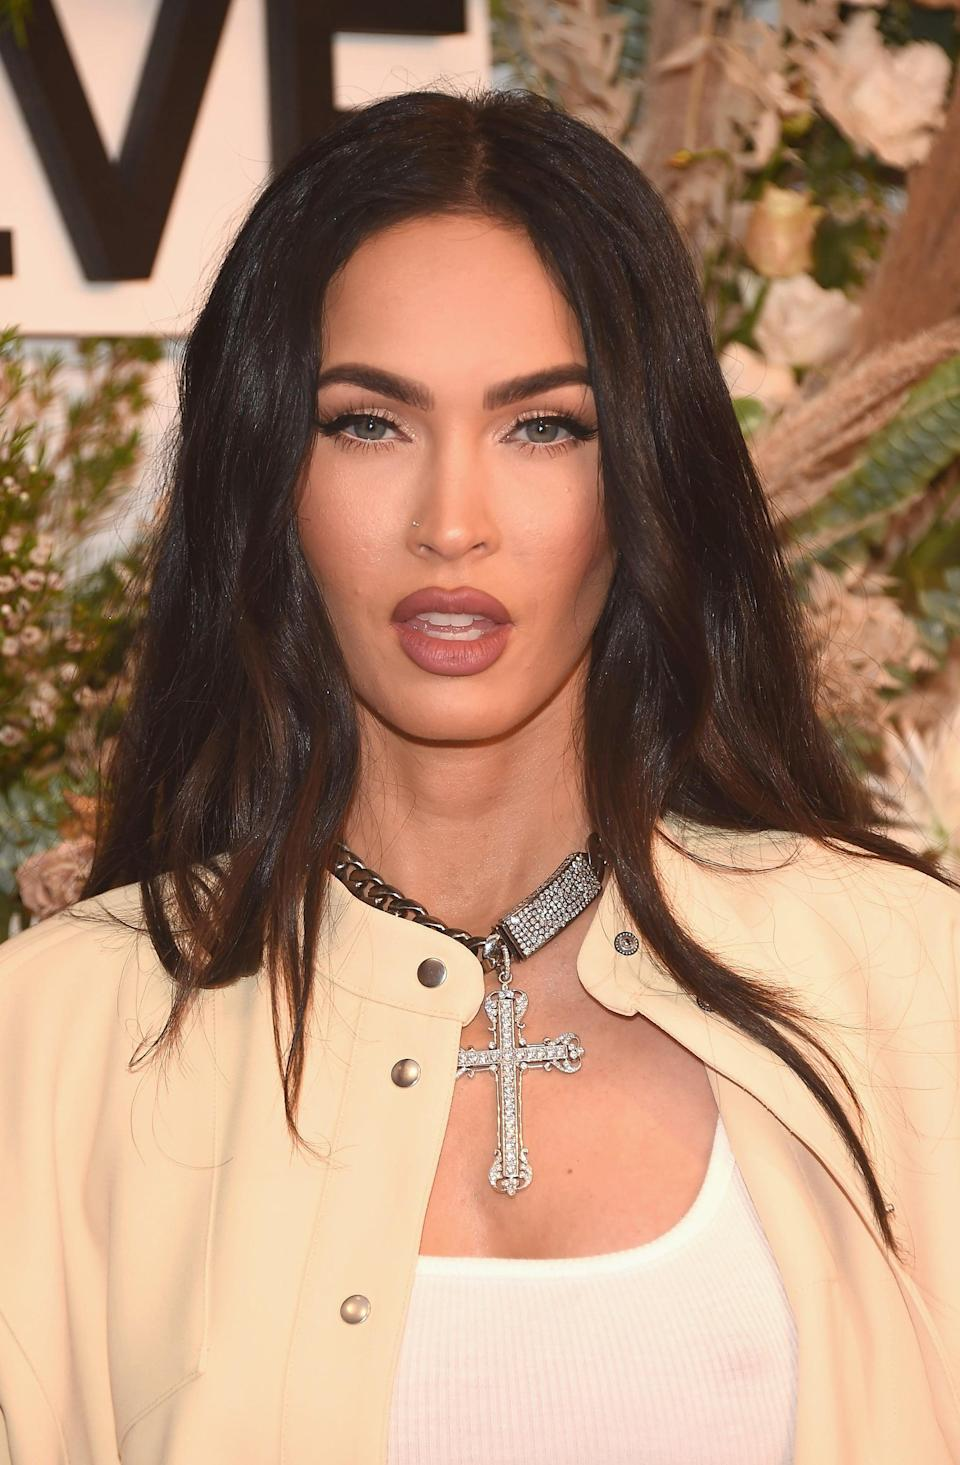 NEW YORK, NEW YORK - SEPTEMBER 09: Megan Fox attends the inaugural REVOLVE GALLERY at Hudson Yards on September 09, 2021 in New York City. (Photo by Gary Gershoff/Getty Images)